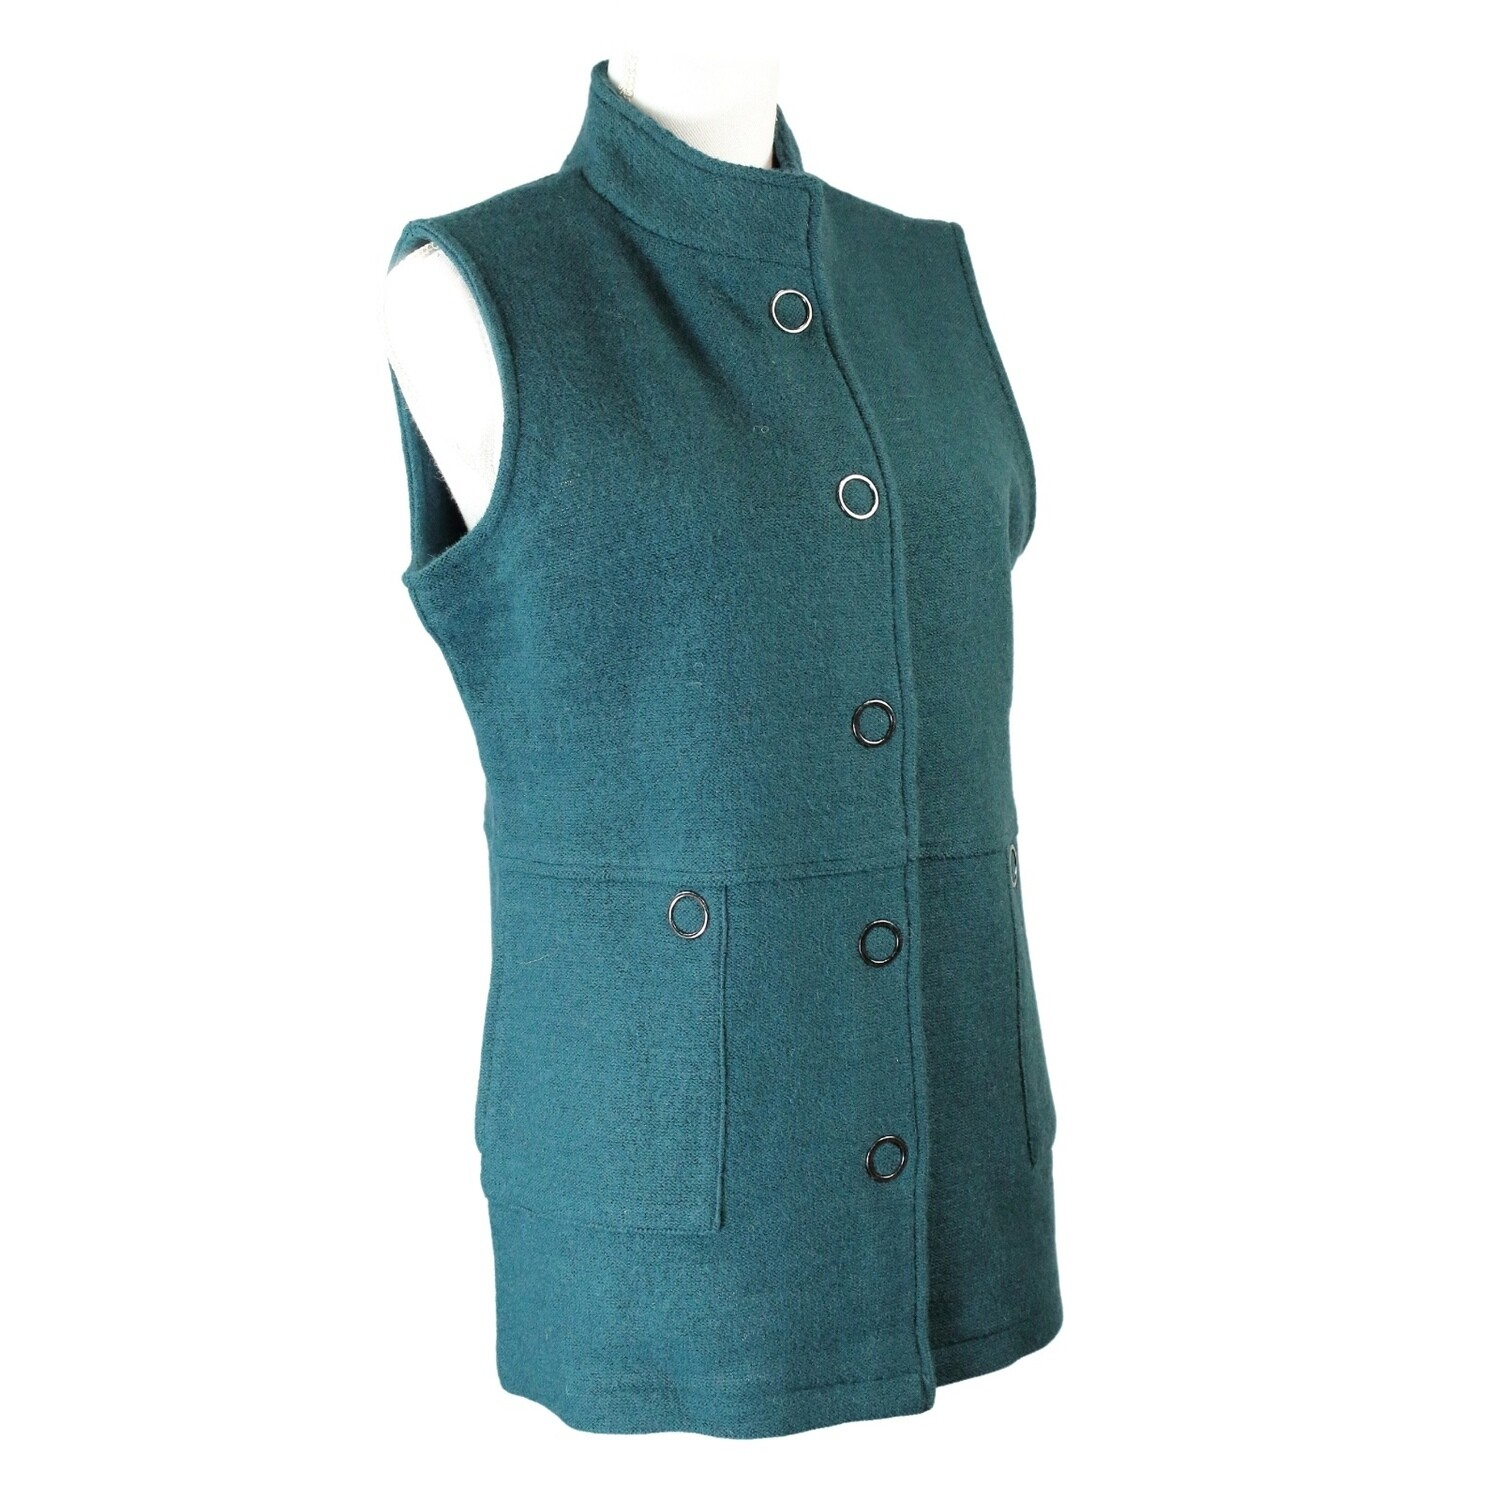 Boiled Wool Button Front Vest by See Saw